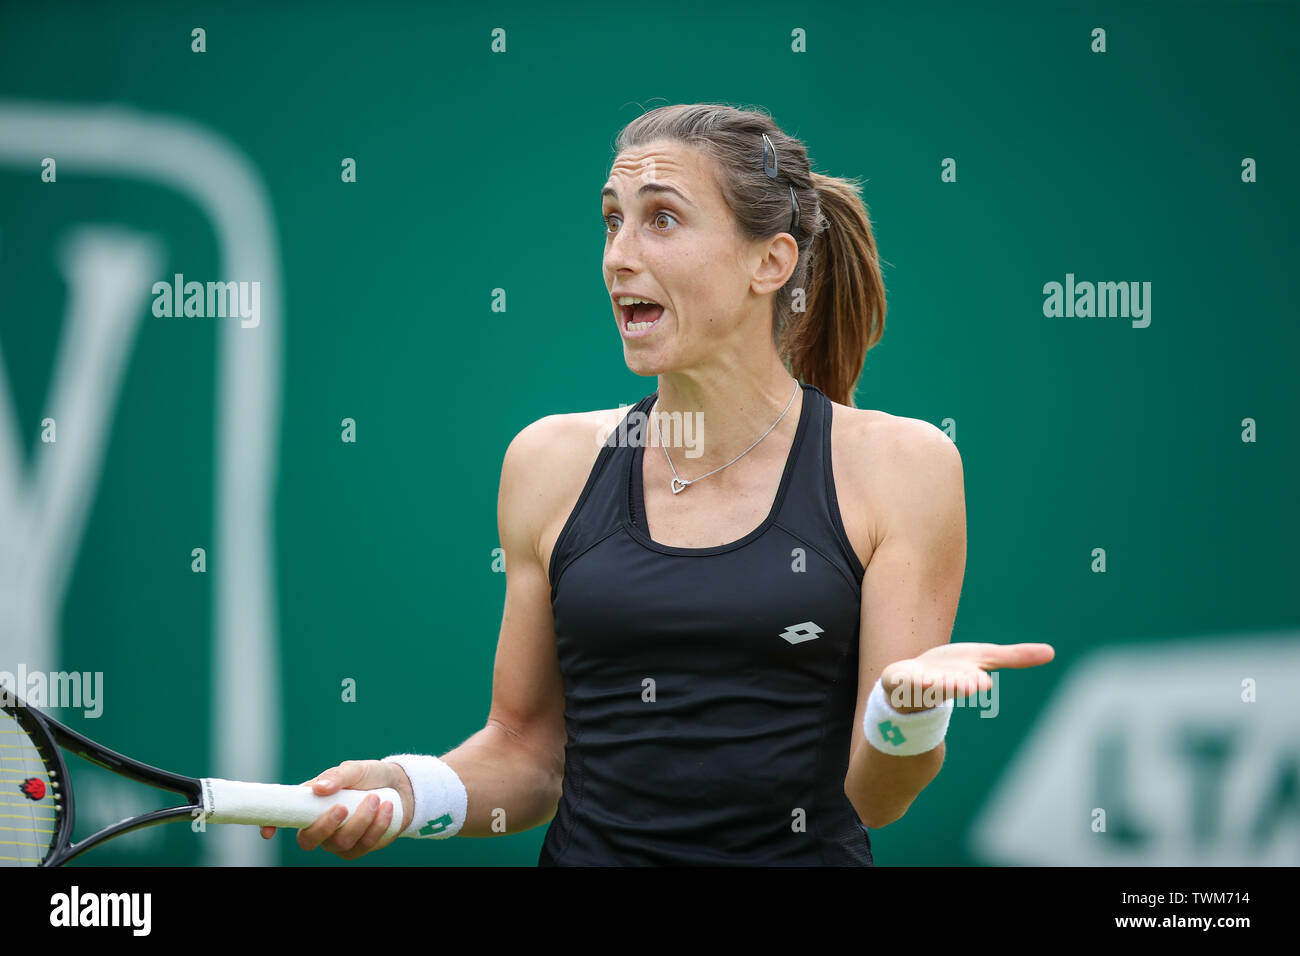 Edgbaston Priory Club, Birmingham, UK. 21st June, 2019. WTA Nature Valley Classic tennis tournament; Petra Martic (CRO) is frustrated and shows it talking to her coach in her quarterfinal match against Jelena Ostapenko (LAT) Credit: Action Plus Sports/Alamy Live News Stock Photo